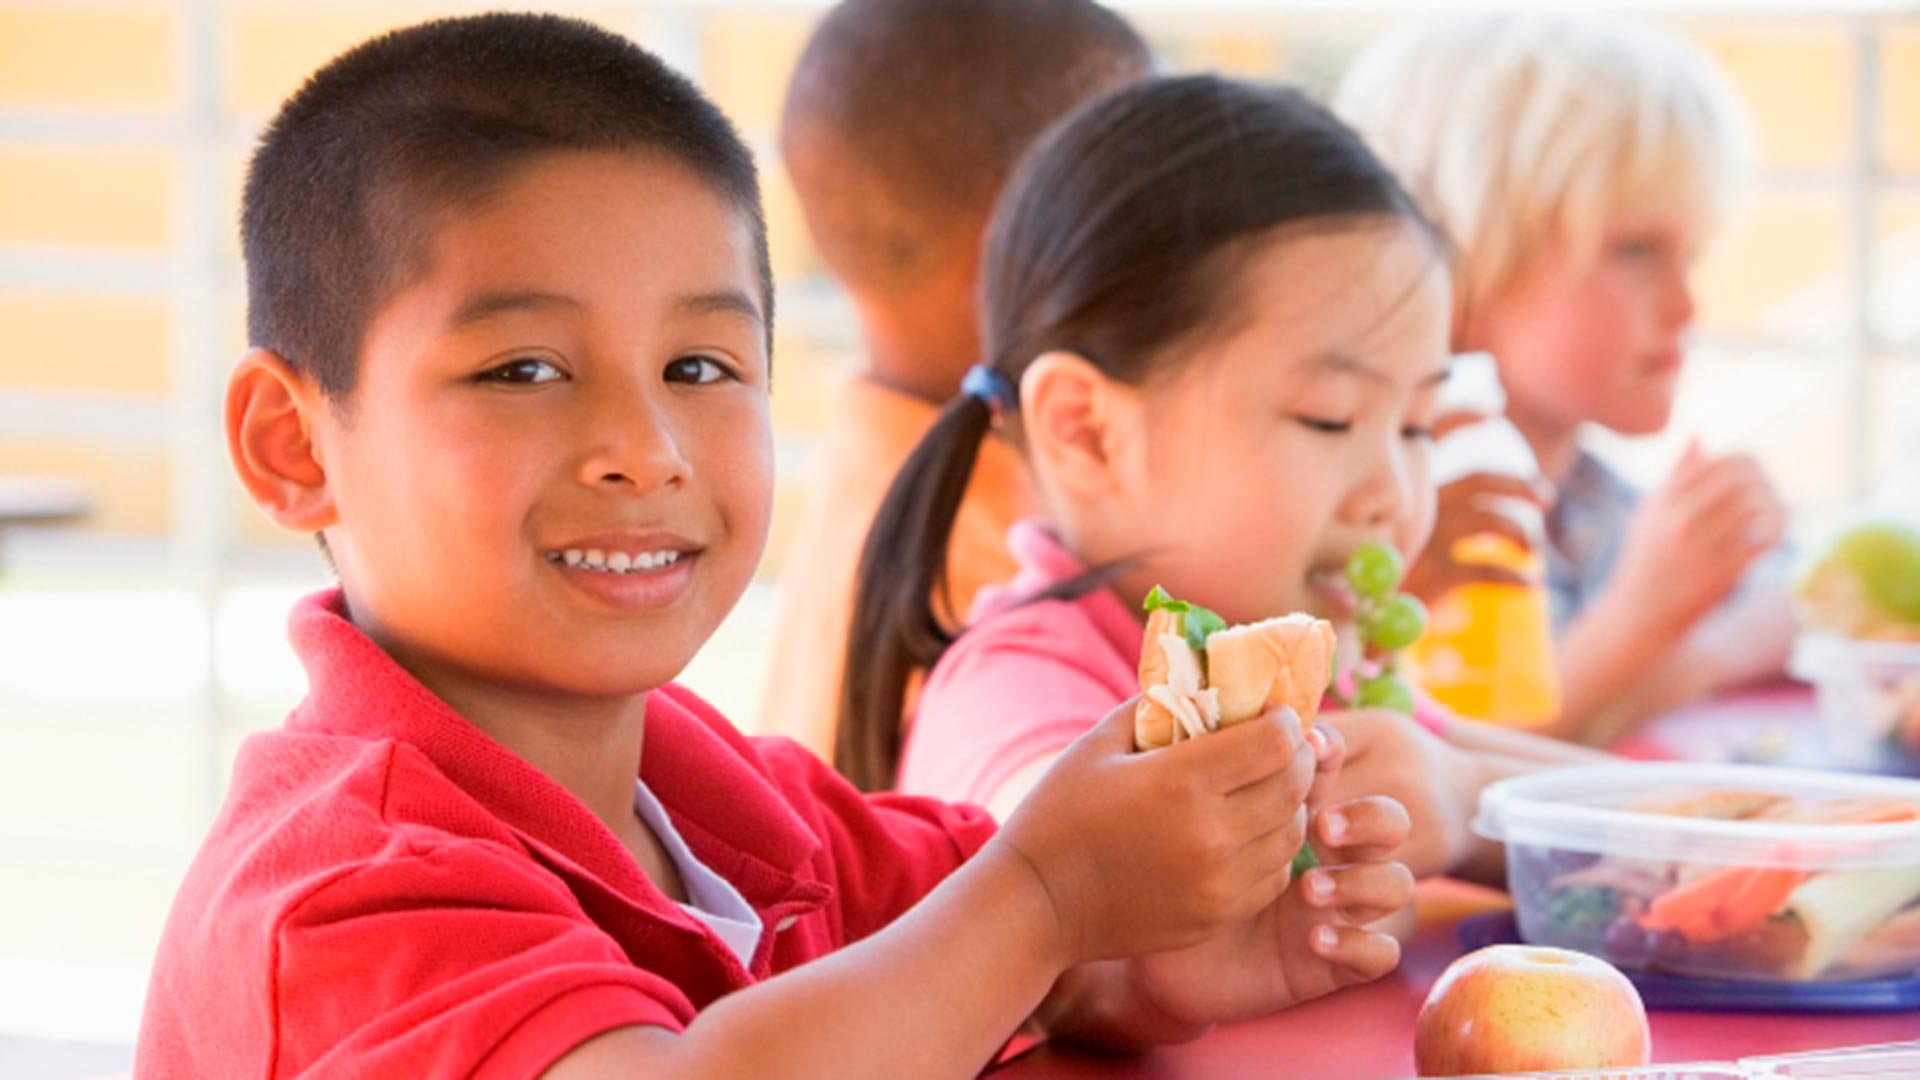 The Arizona Department of Education coordinates programs to provide free meals for kids in the summer.